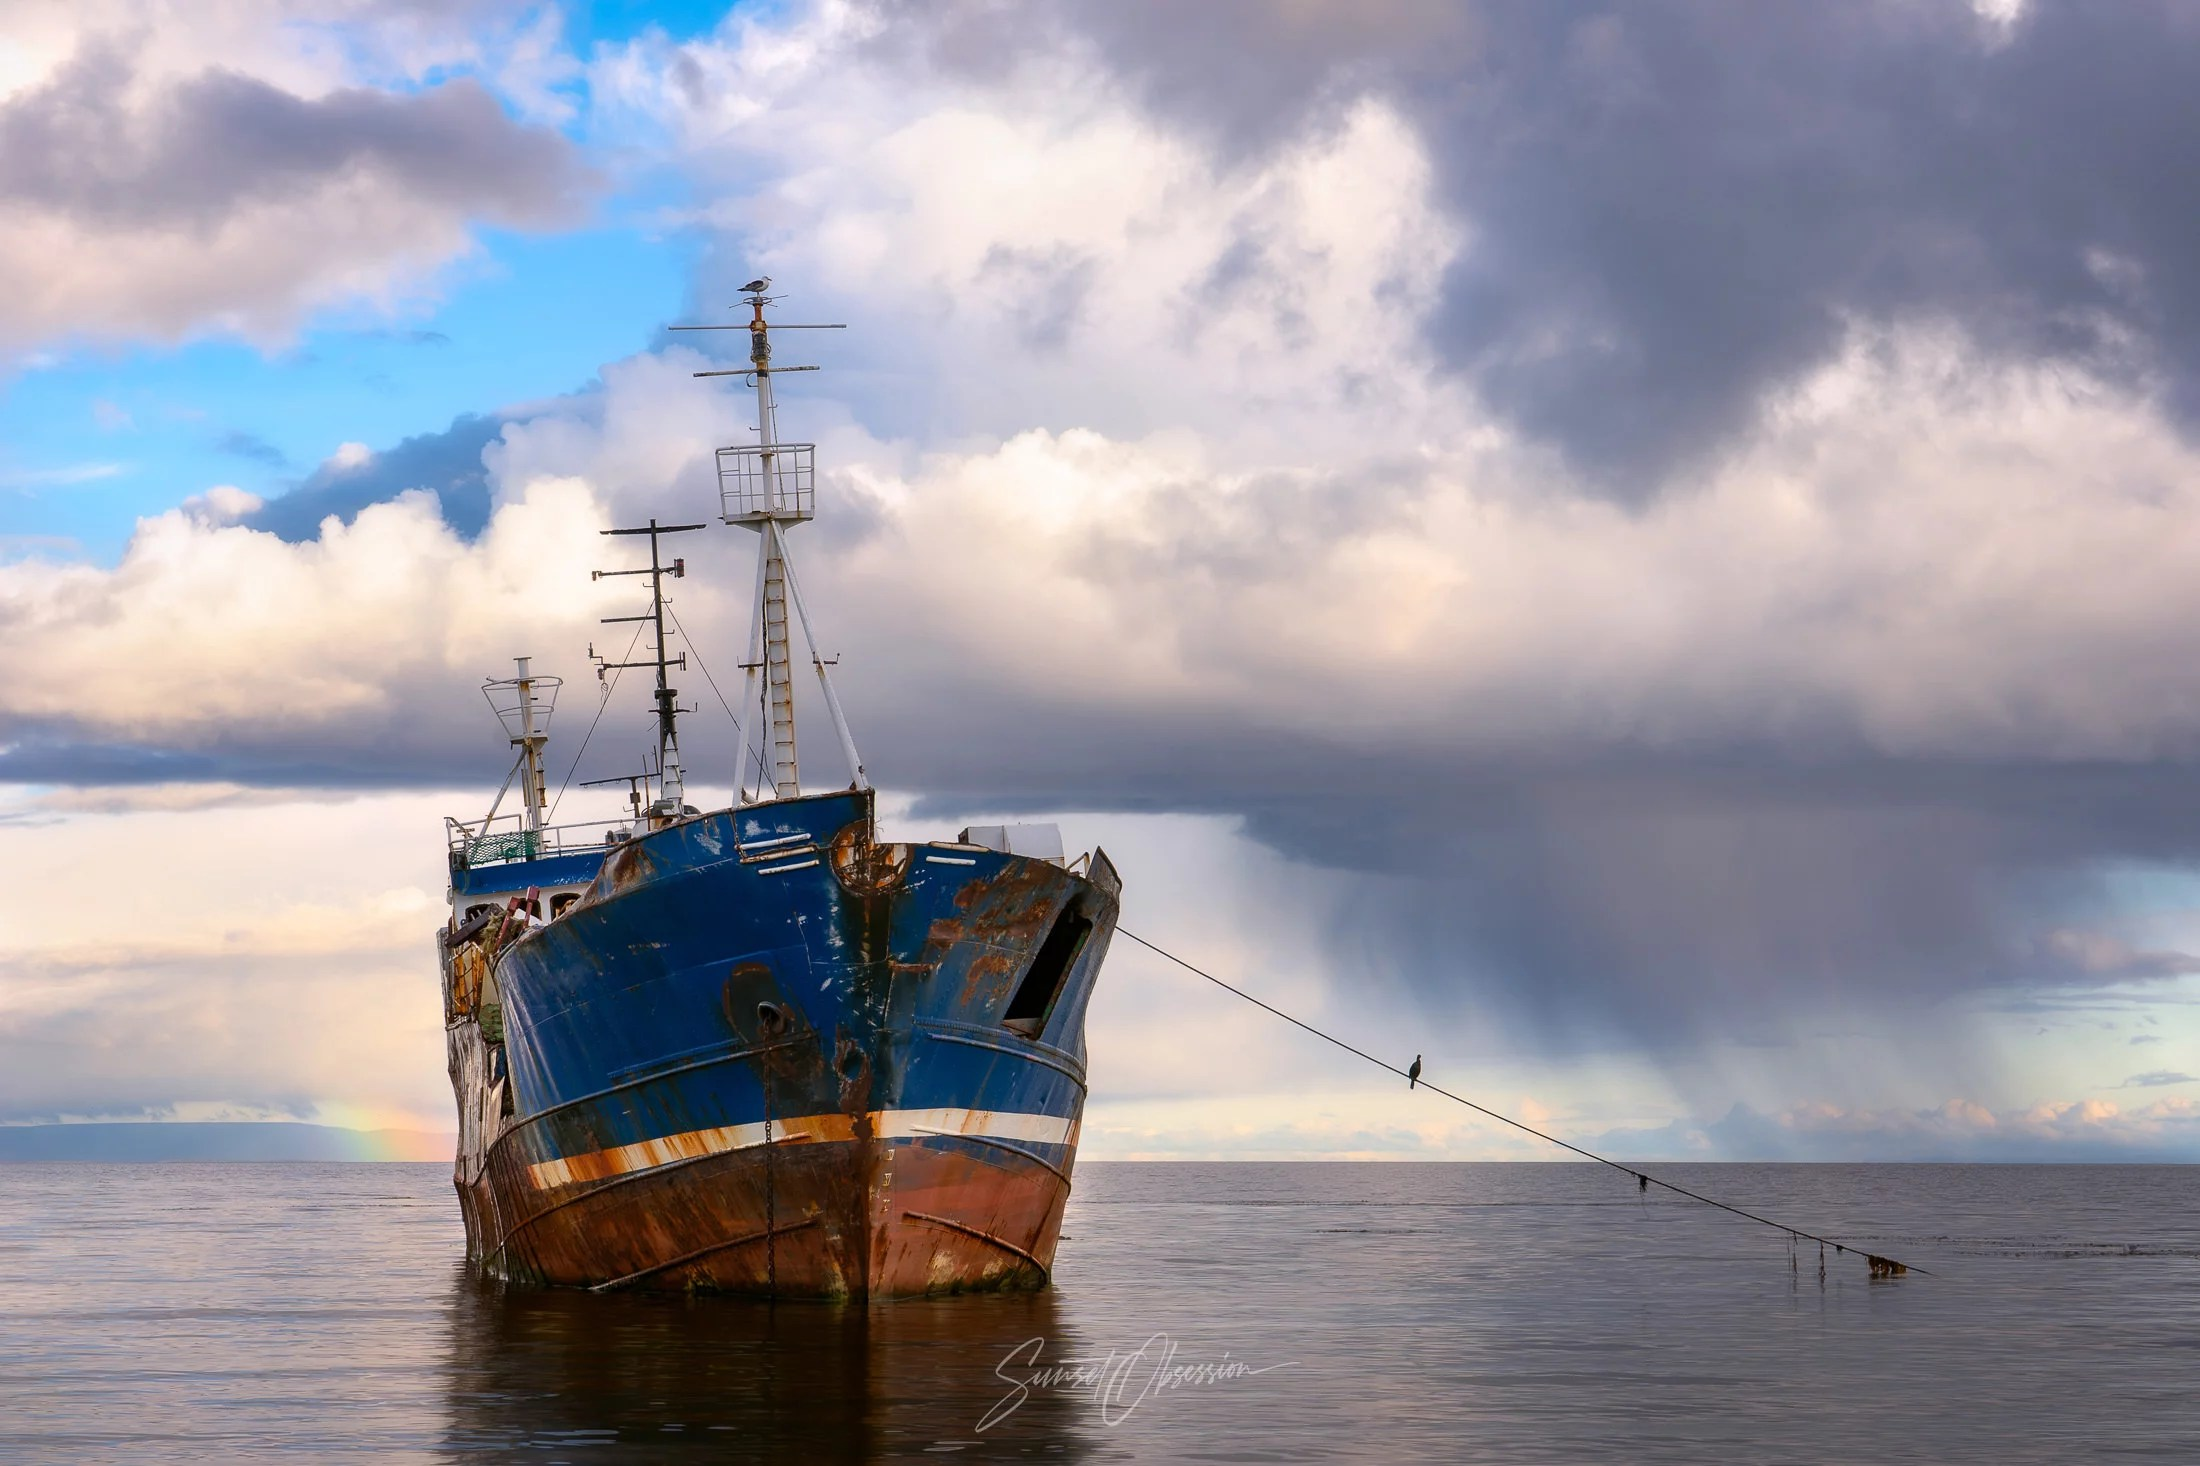 Abandoned ship in the Strait of Magellan, Chilean Patagonia